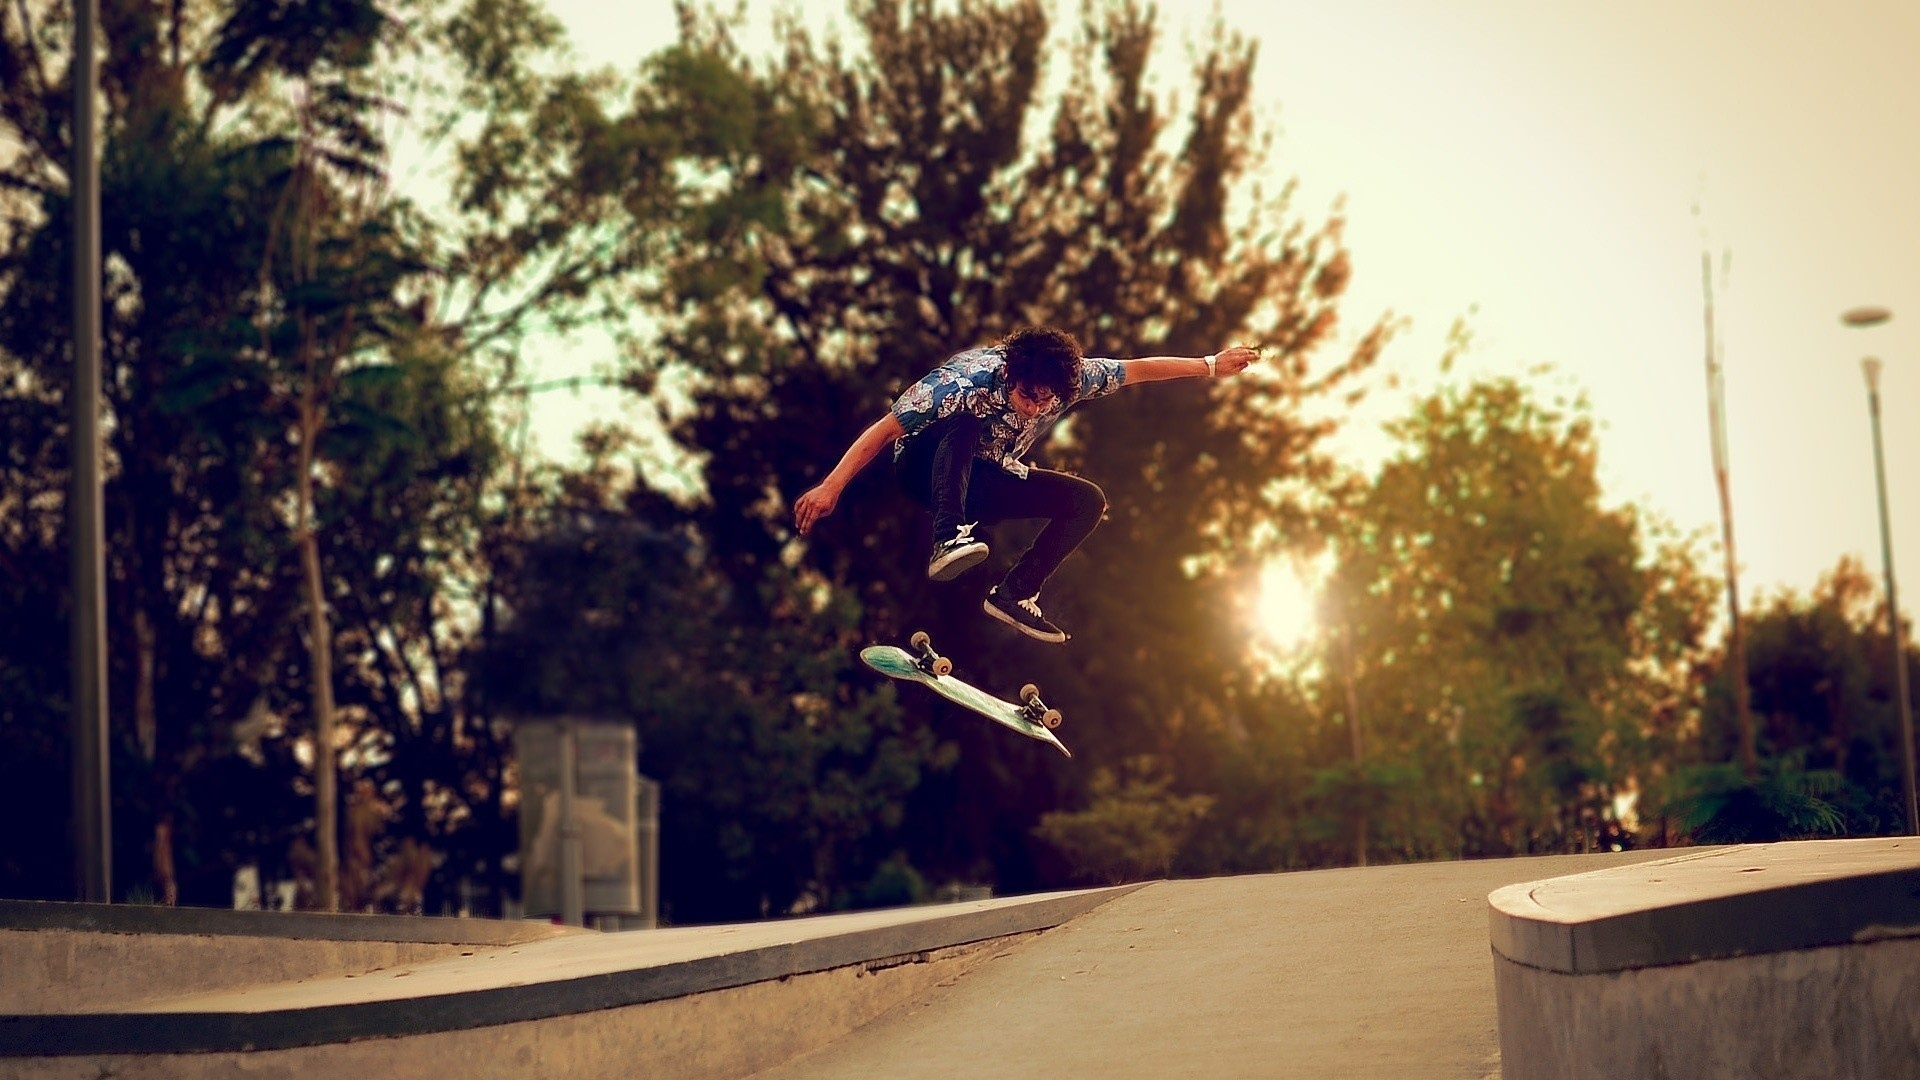 Skateboards Wallpapers Group  1920x1080